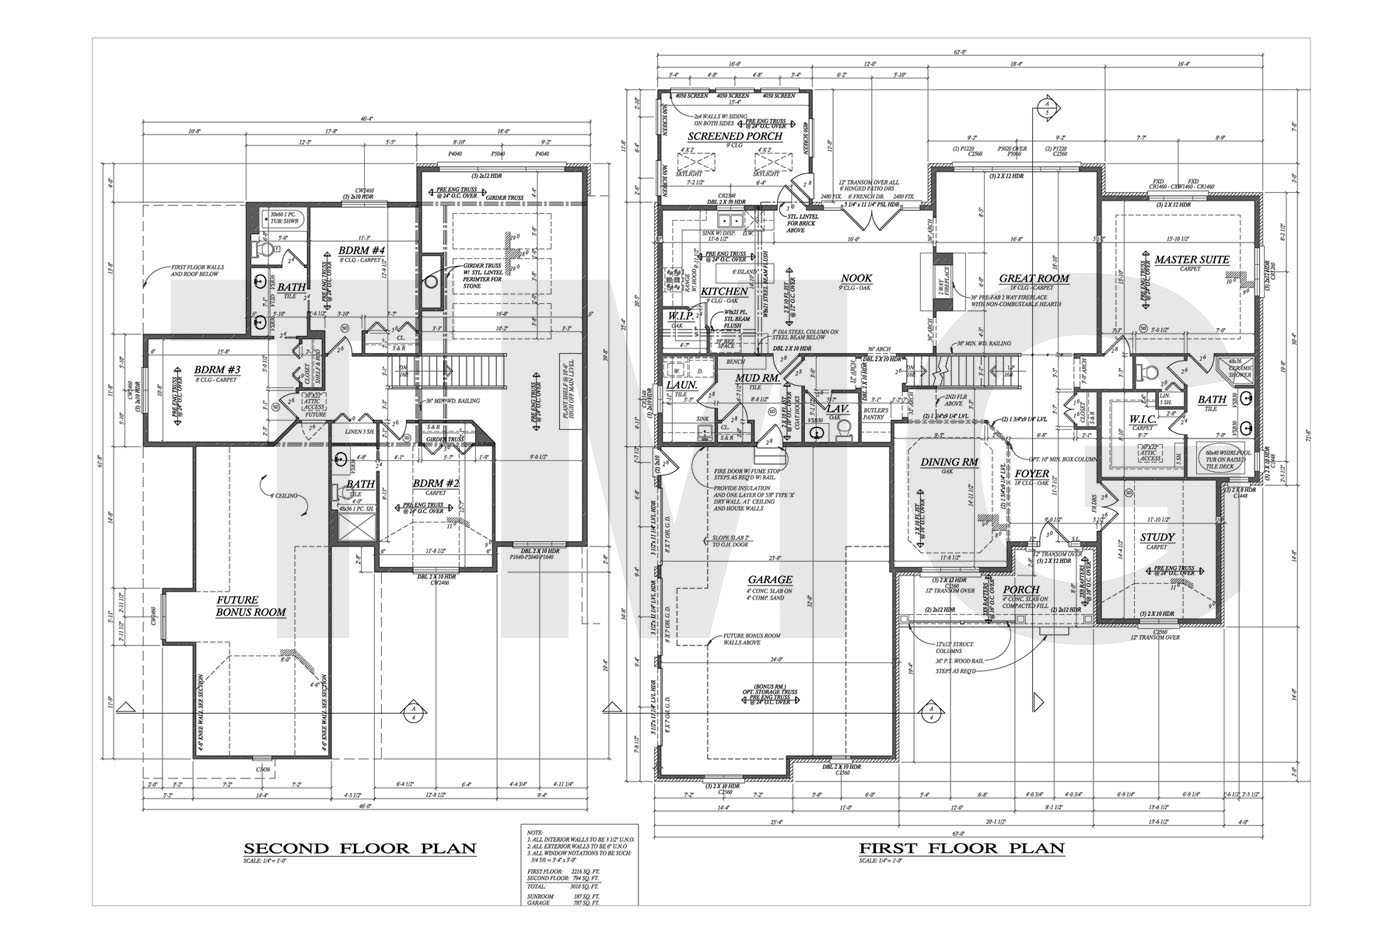 House Plans Drafting | The Magnum Group (TMG), India |